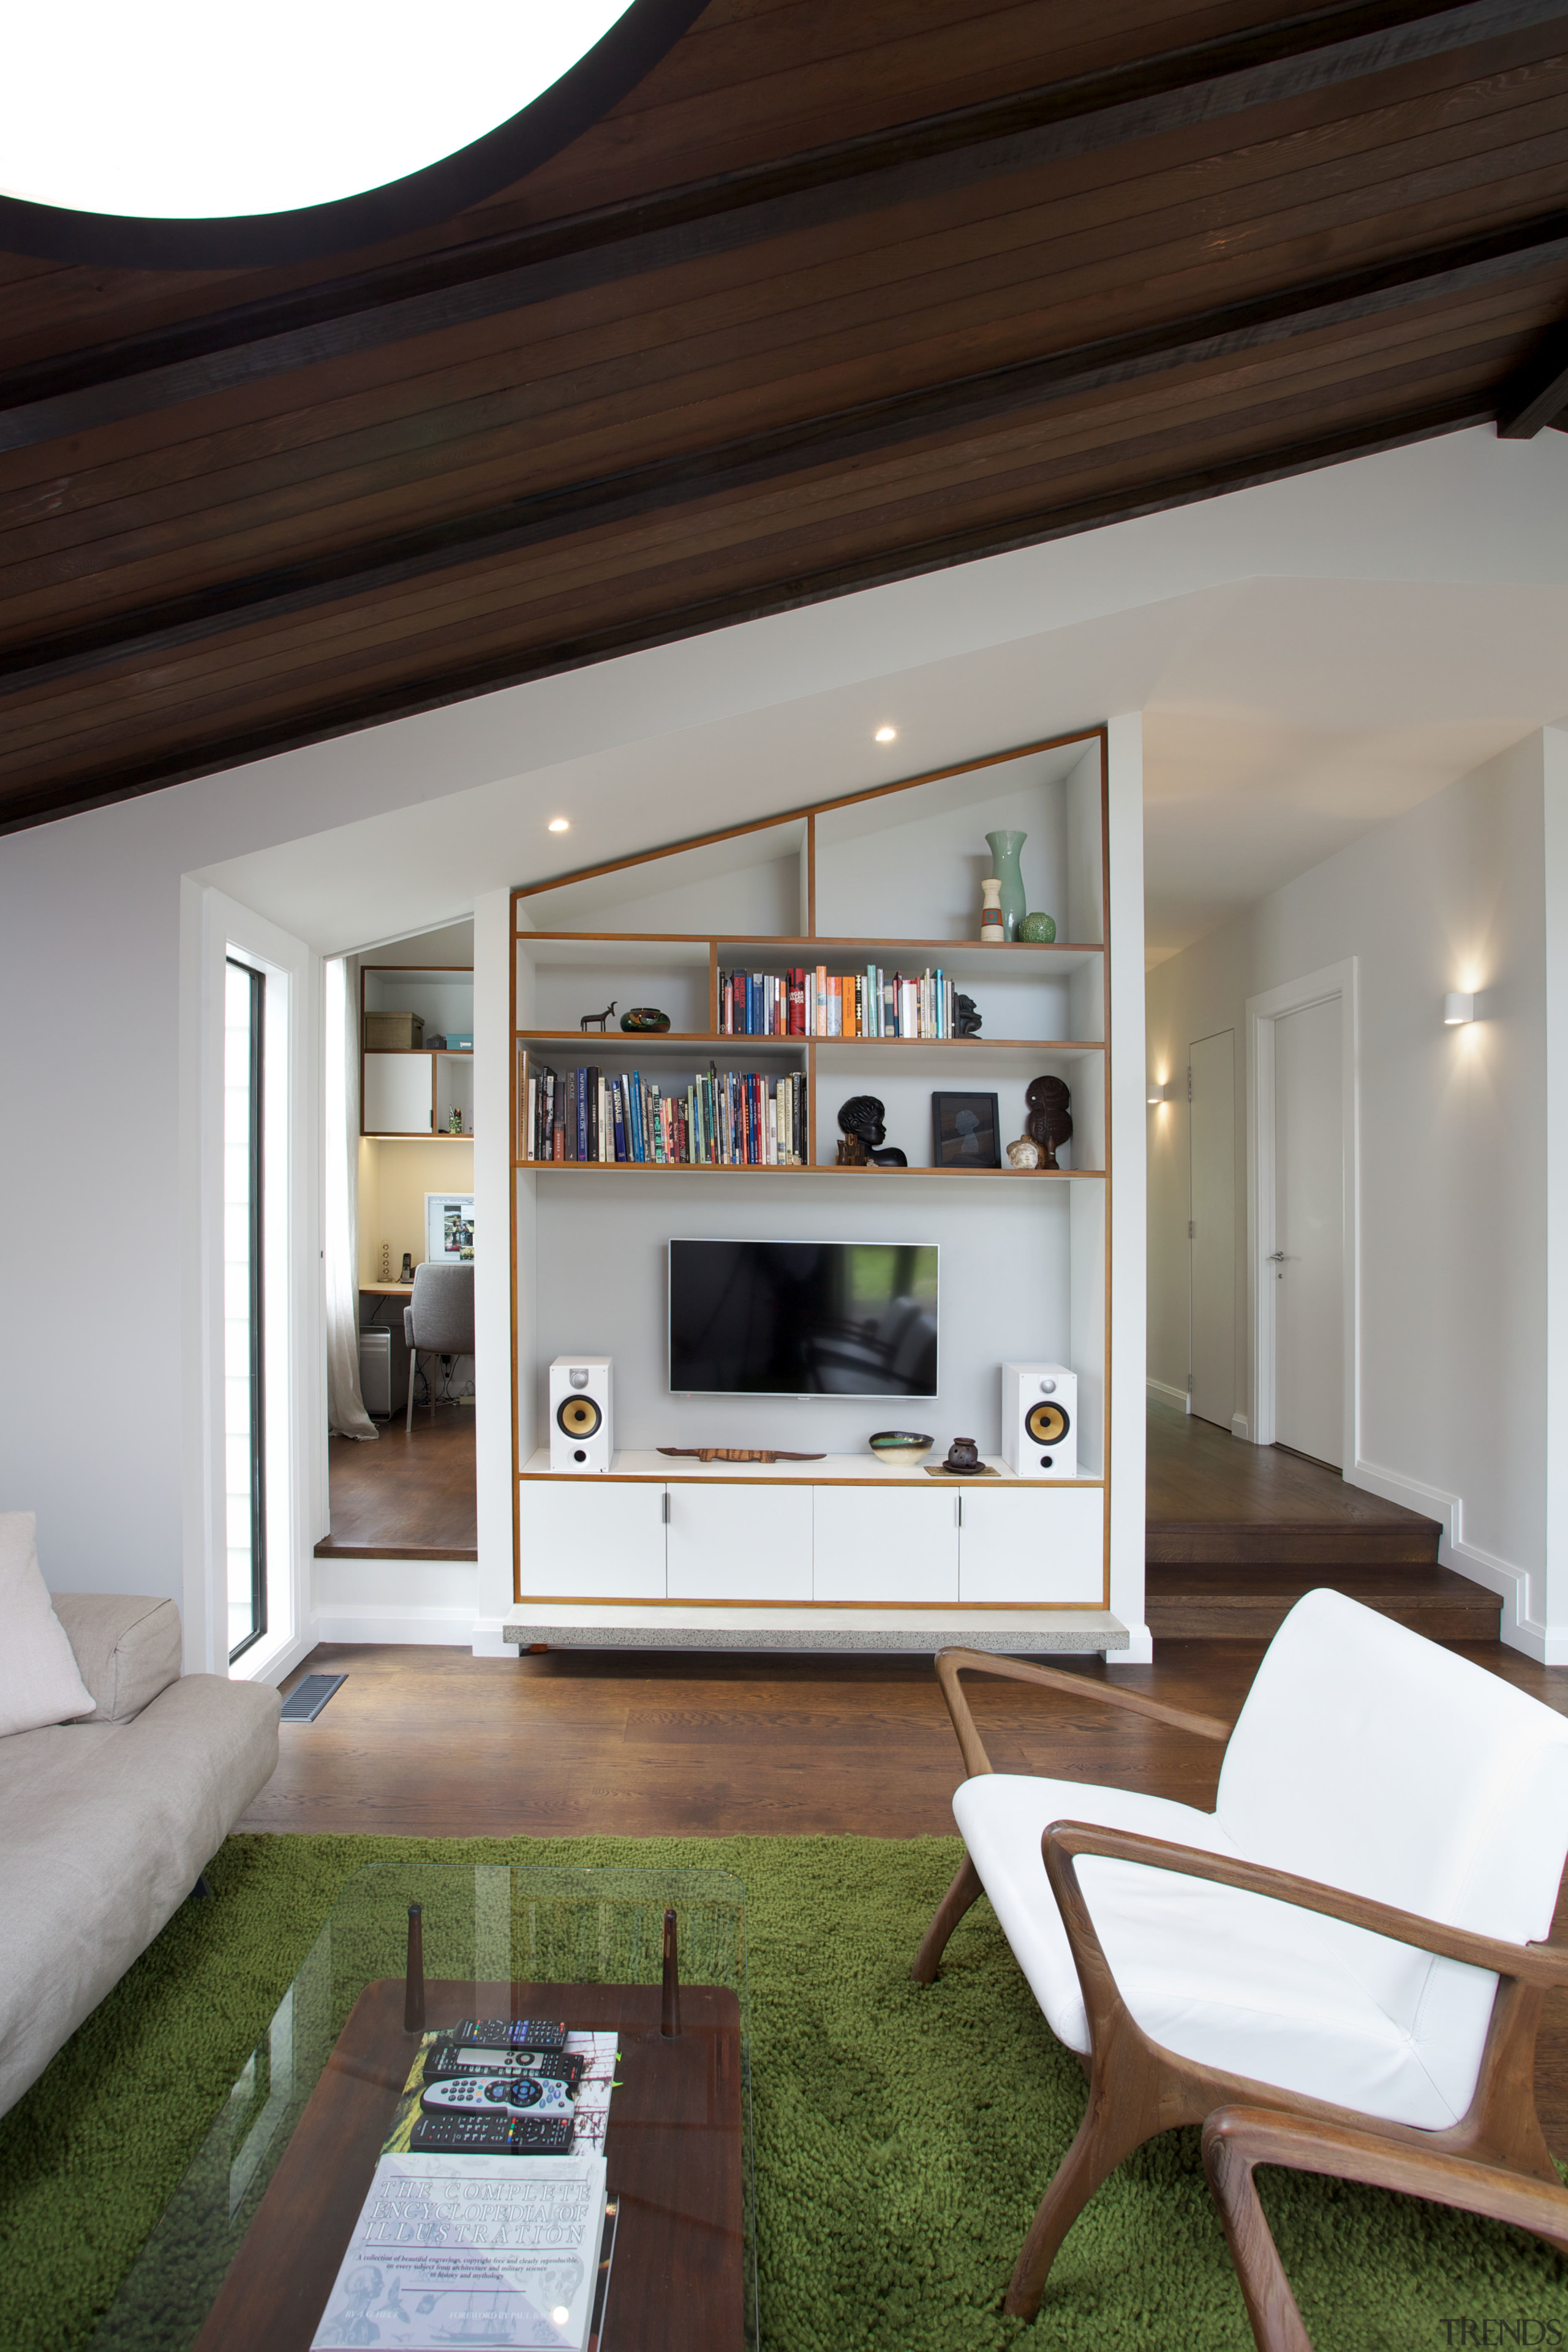 In this renovated villa, a home office is furniture, home, house, interior design, living room, table, black, white